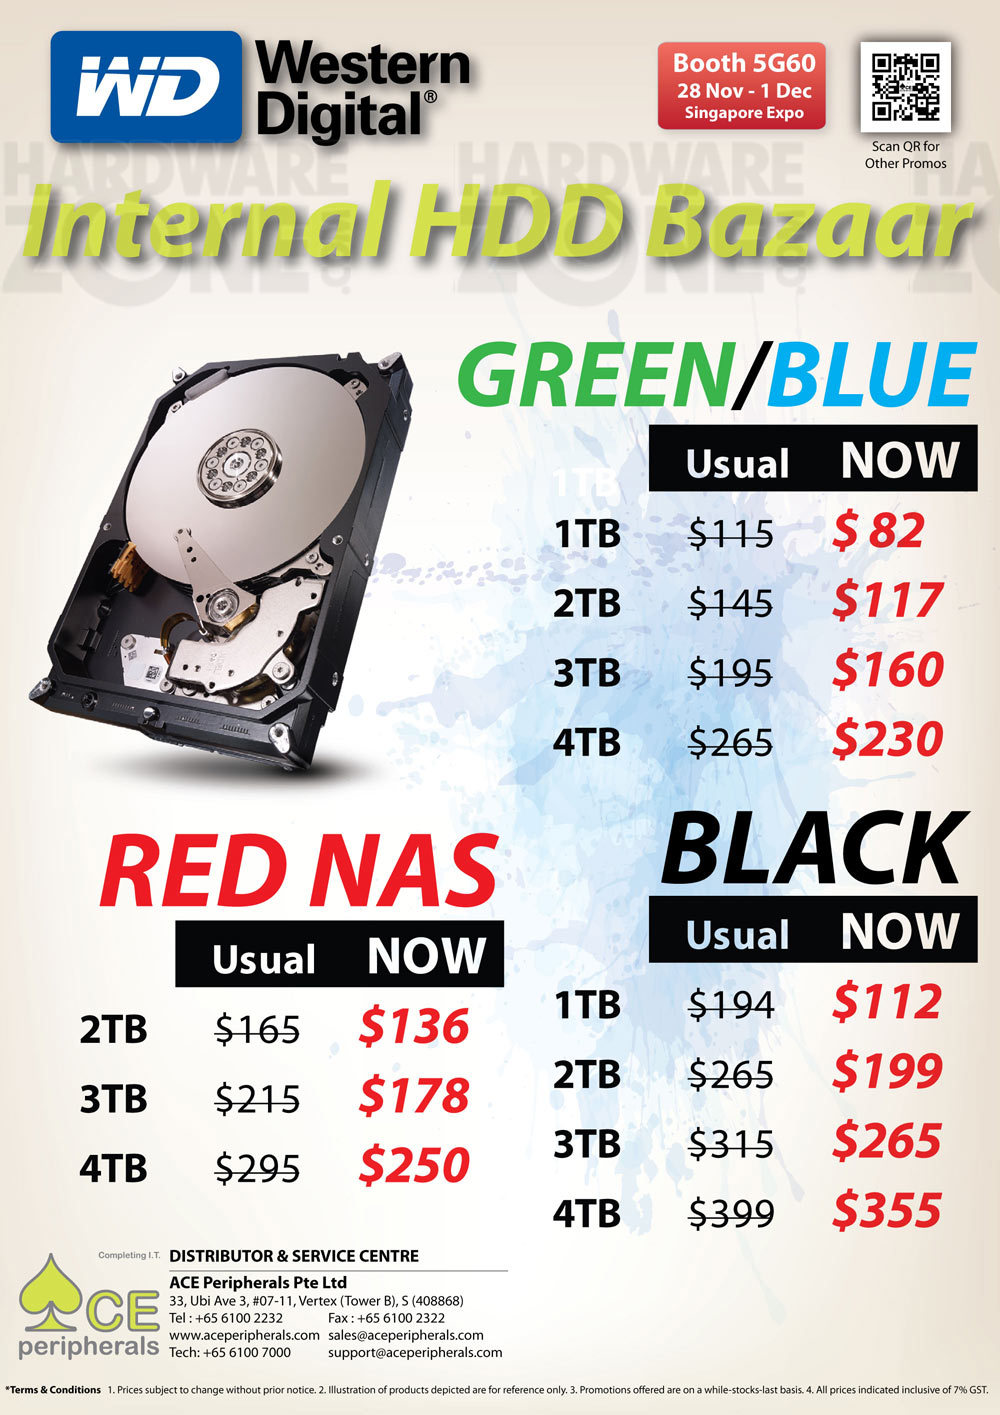 WD internal HDD